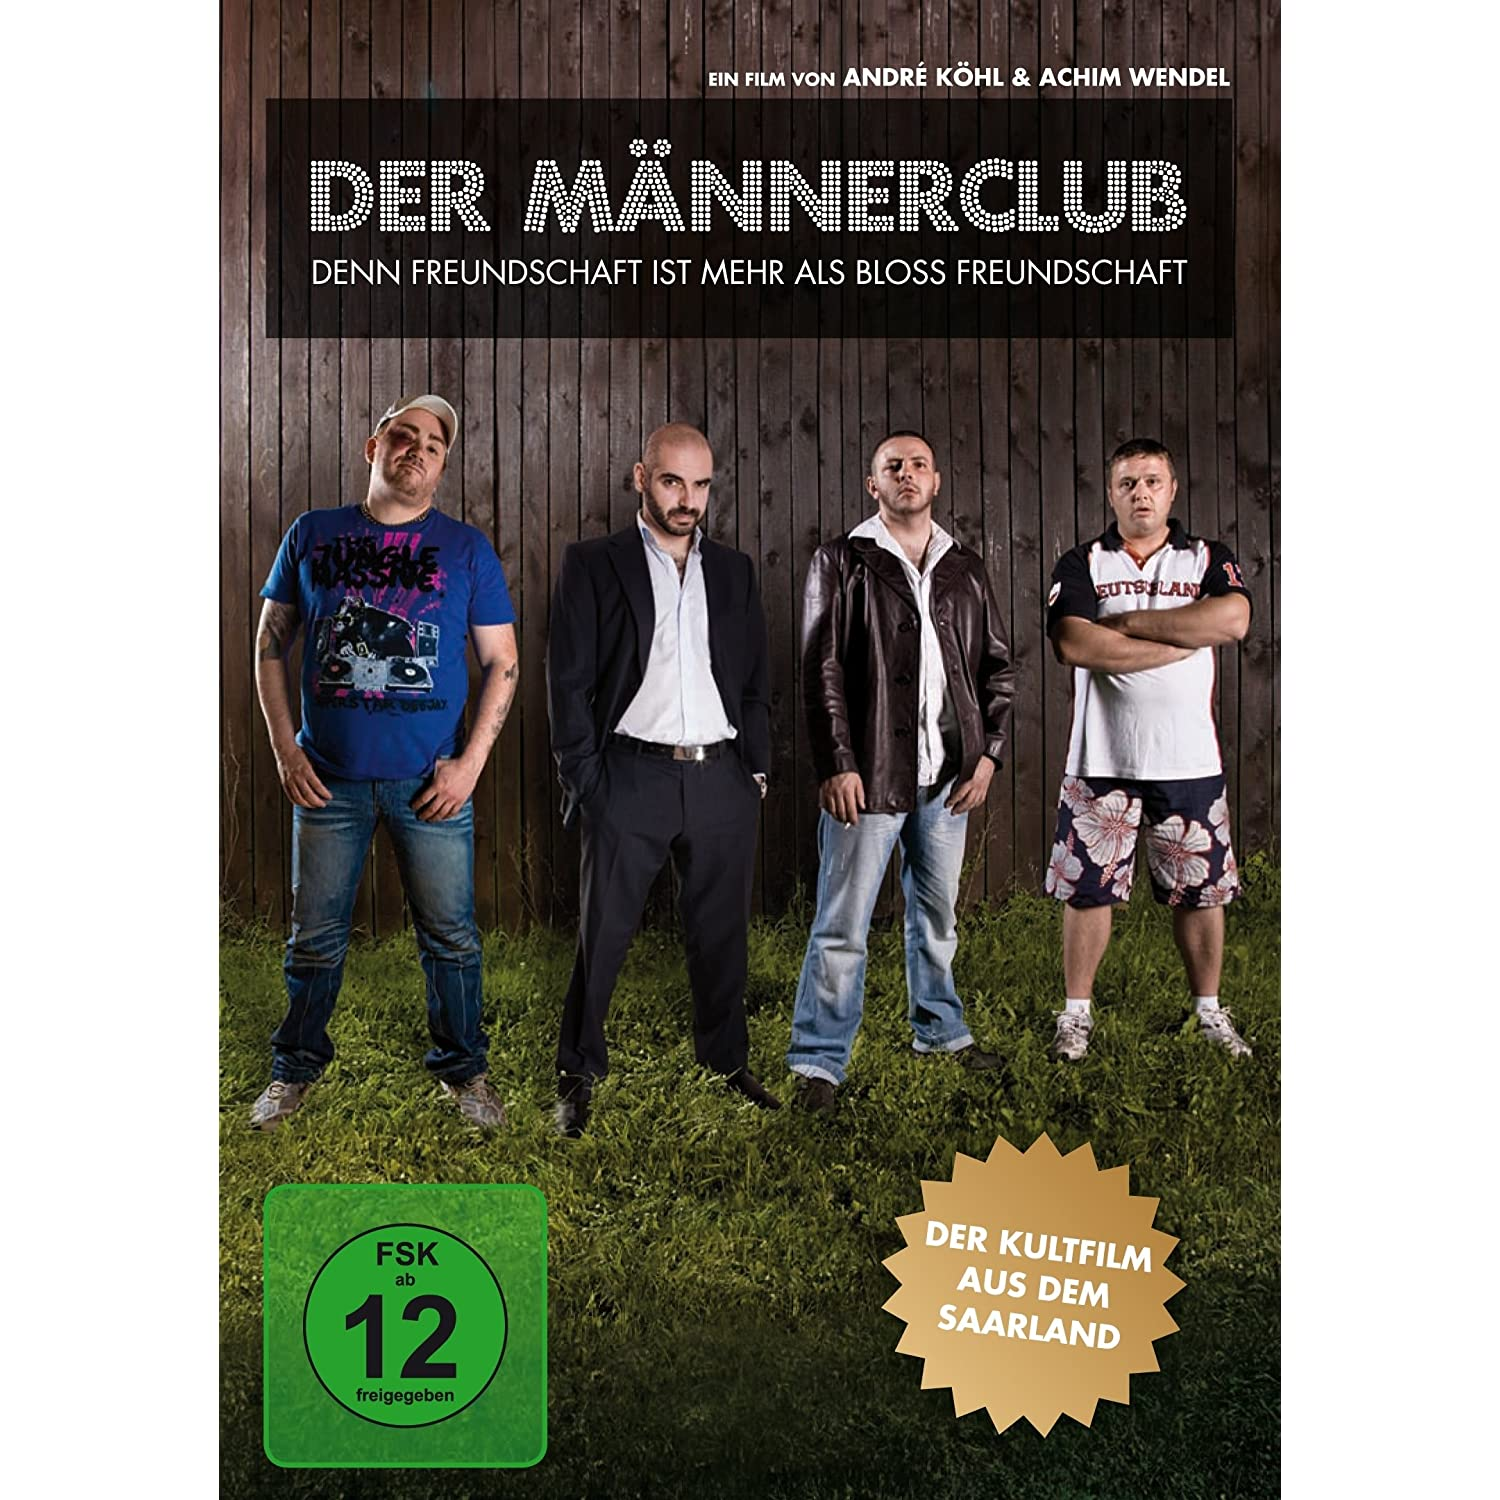 Der Mnnerclub auf DVD